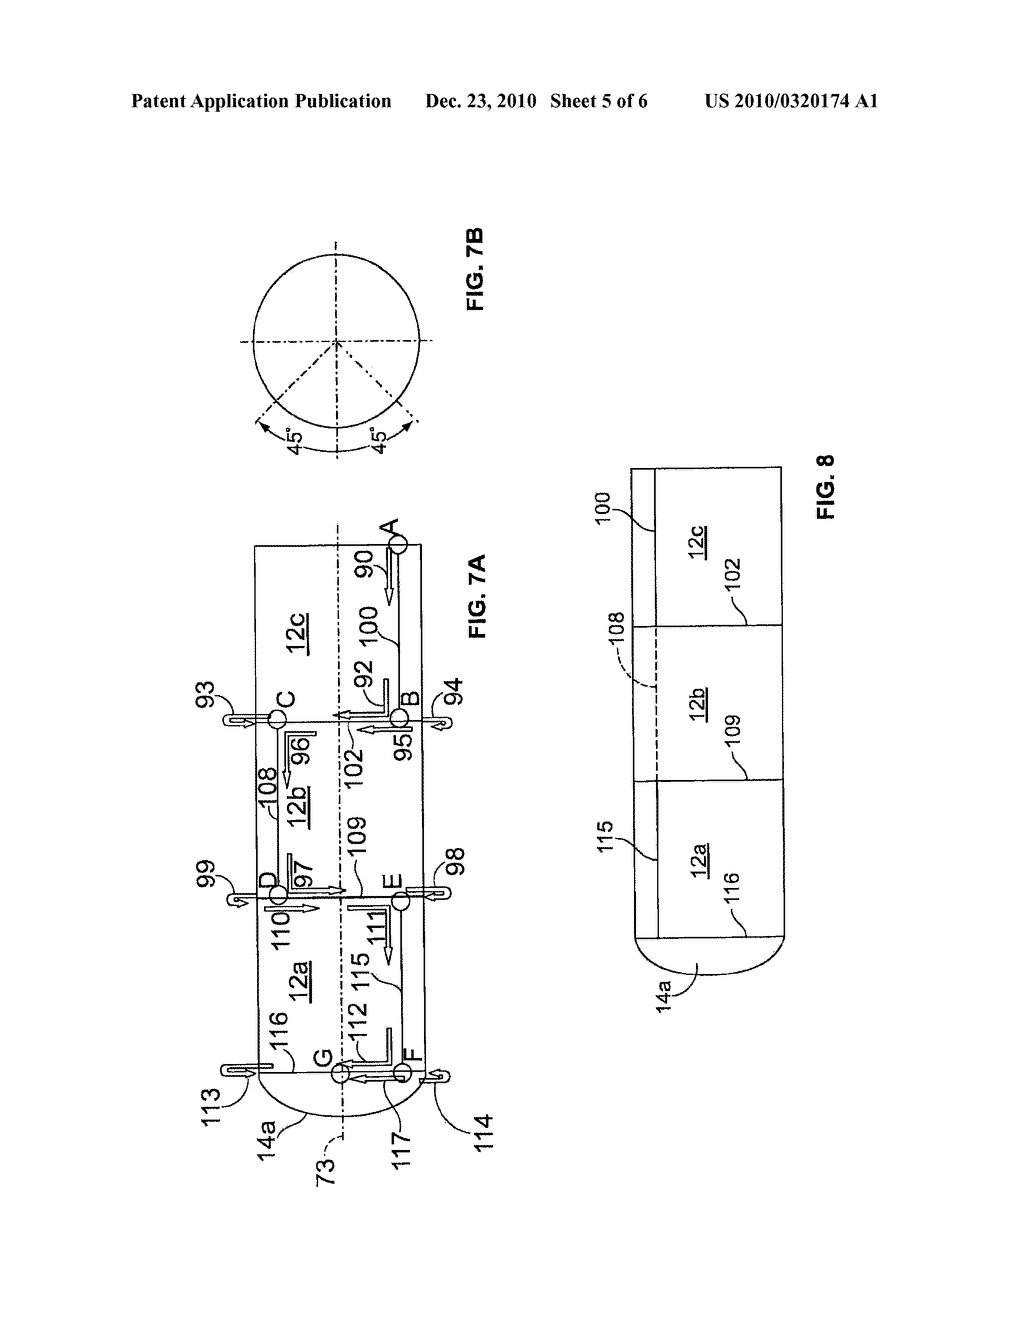 hight resolution of hybrid laser arc welding system and method for railroad tank car fabrication diagram schematic and image 06